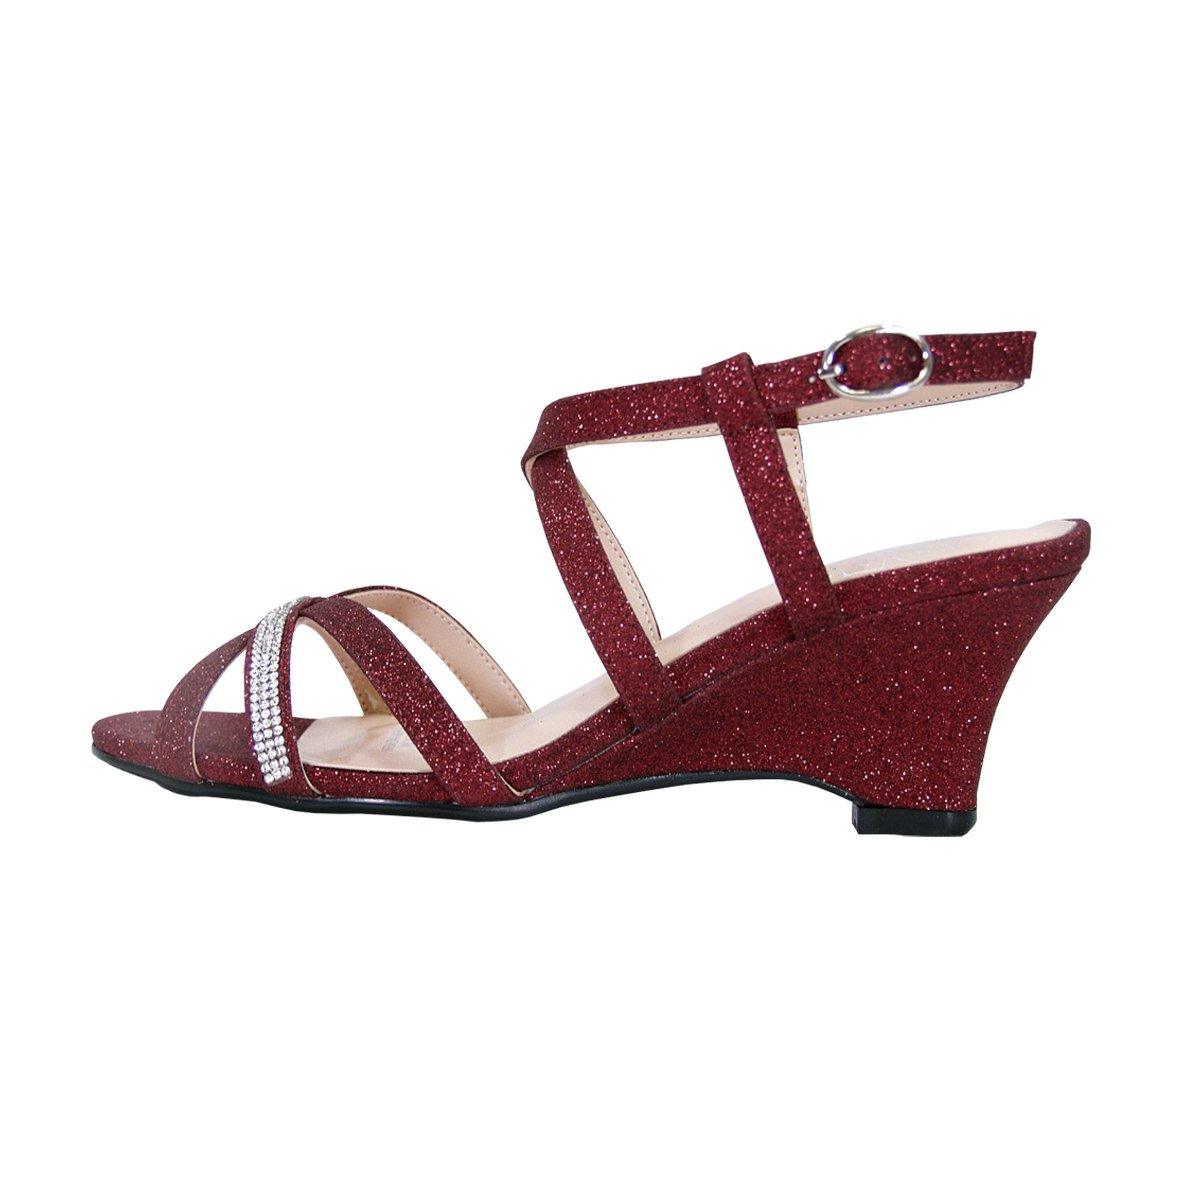 c88b8cf43 Amazon.com   Floral Joanne Women Wide Width Chic Rhinestone Strappy Wedge  Sexy Party Heeled Sandals   Platforms & Wedges